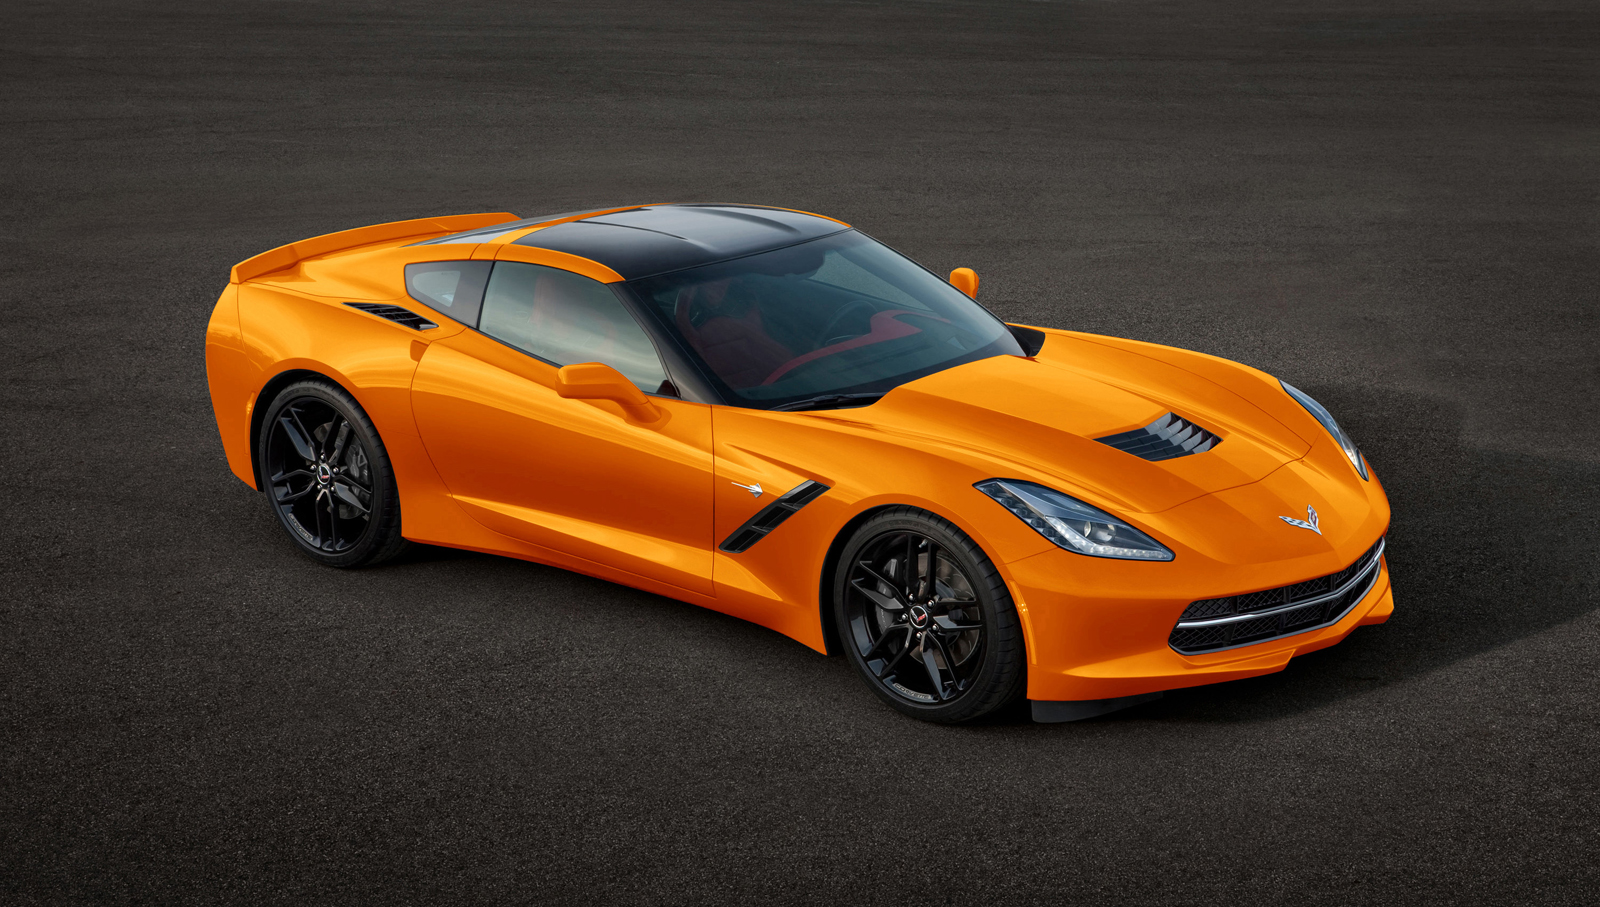 2014 Chevrolet Corvette Stingray Colors moreover Chevy S10 Wiring Diagram also Honda Goldwing 1500 Wiring Diagrams additionally Mercedes Fault Codes List additionally Automotive Relay Wiring Diagram Symbols. on hino wiring schematics